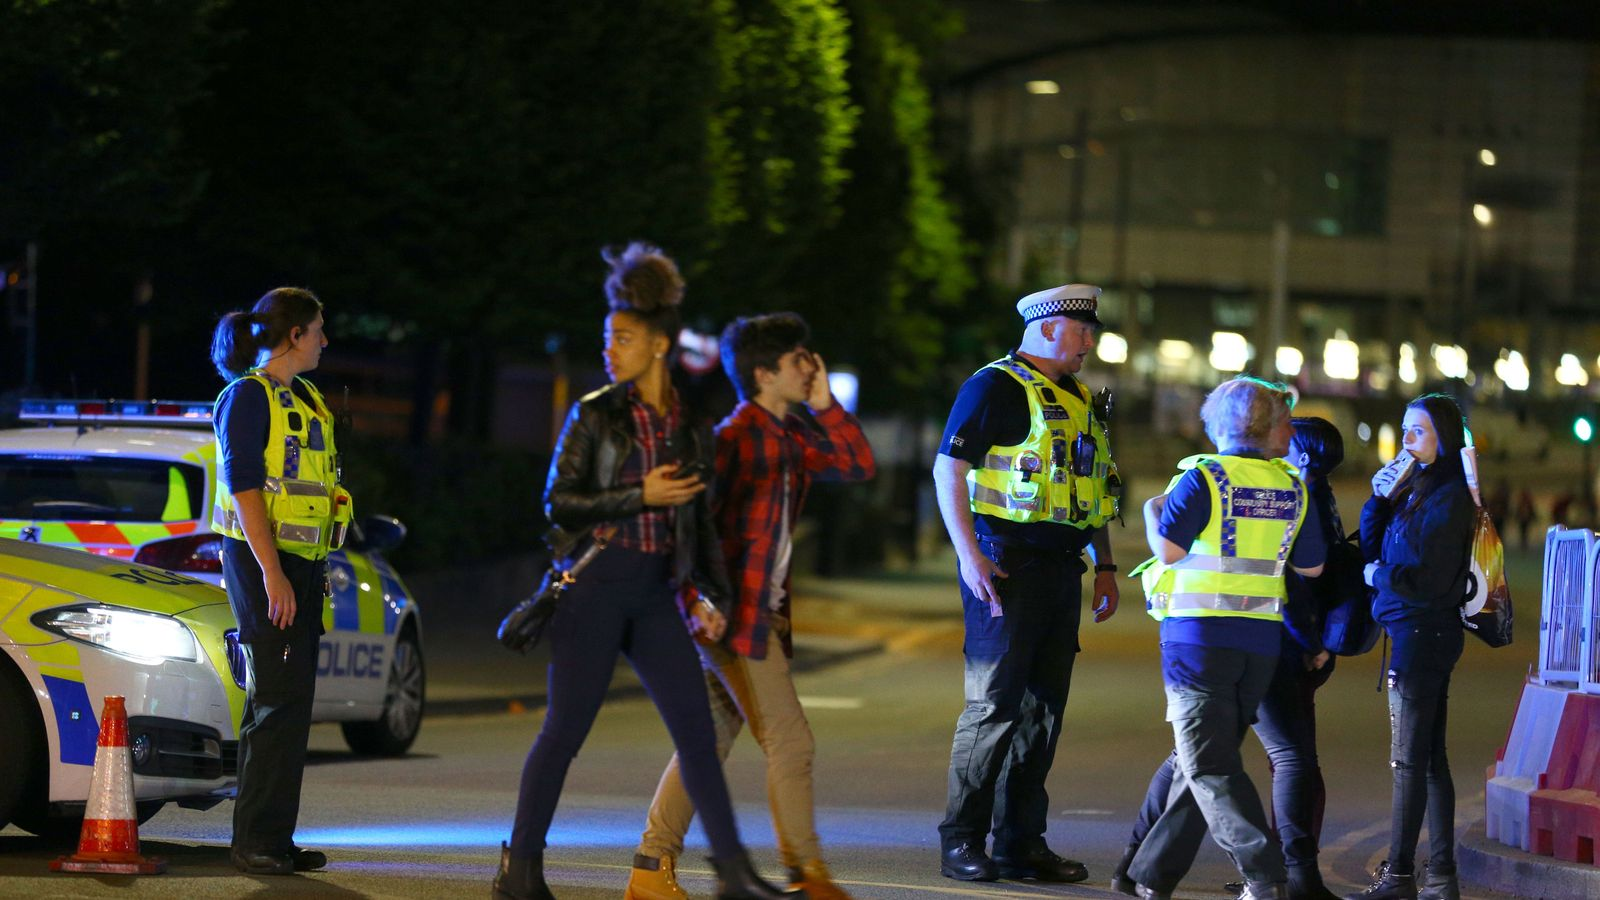 Raids, arrests as on-edge United Kingdom  seeks 'network' of attackers